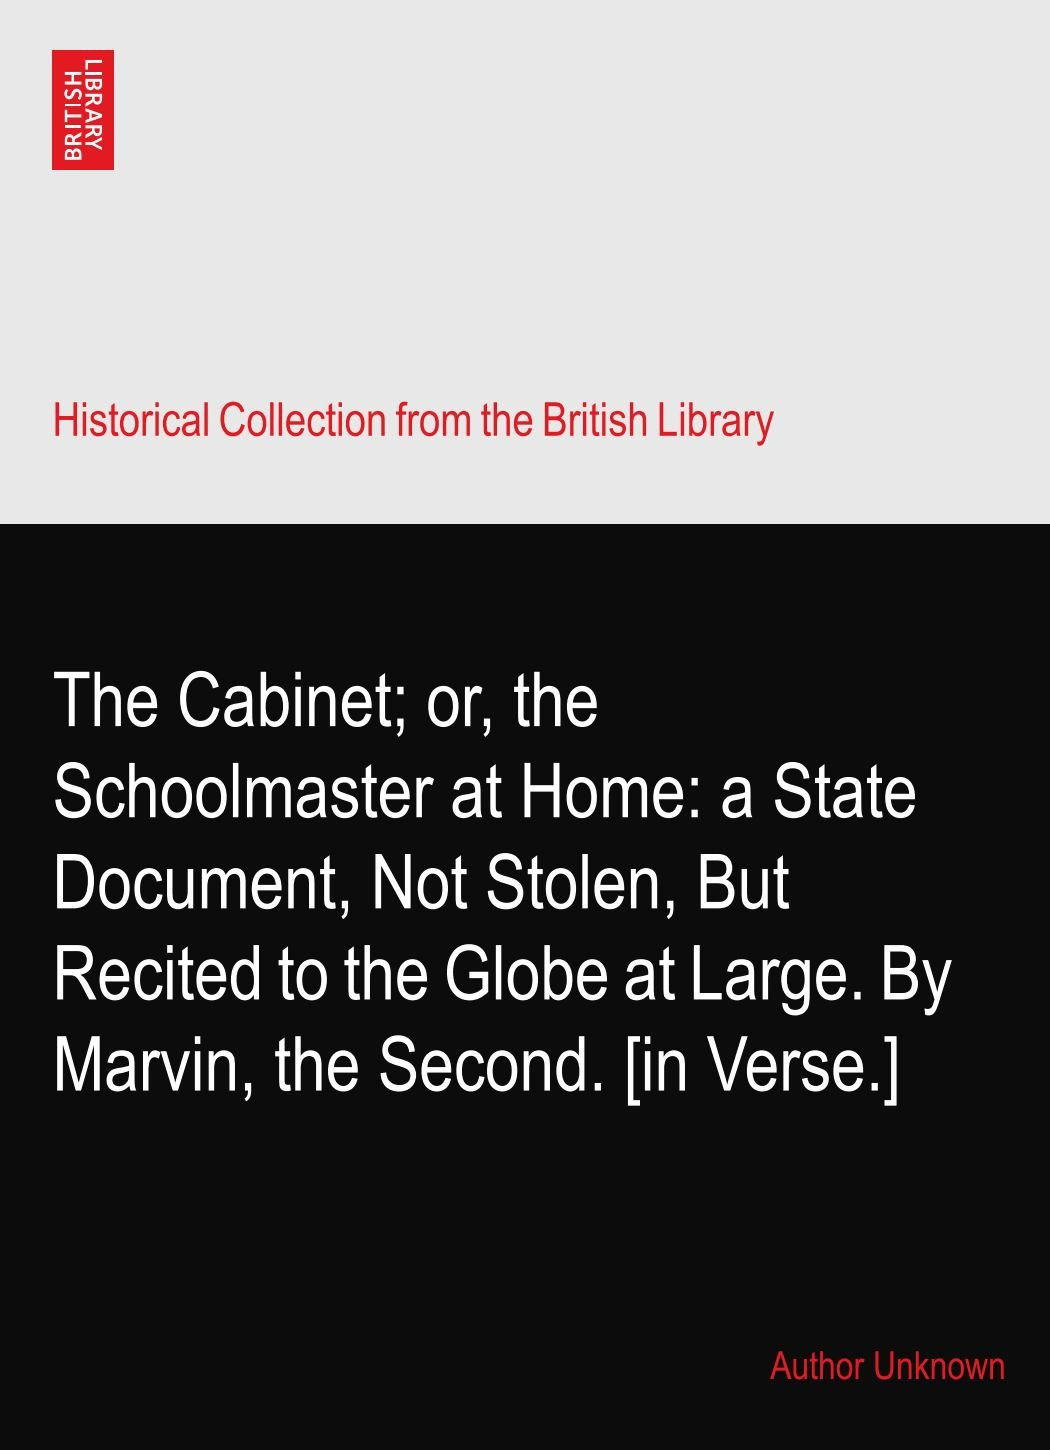 The Cabinet; or, the Schoolmaster at Home: a State Document, Not Stolen, But Recited to the Globe at Large. By Marvin, the Second. [in Verse.] PDF